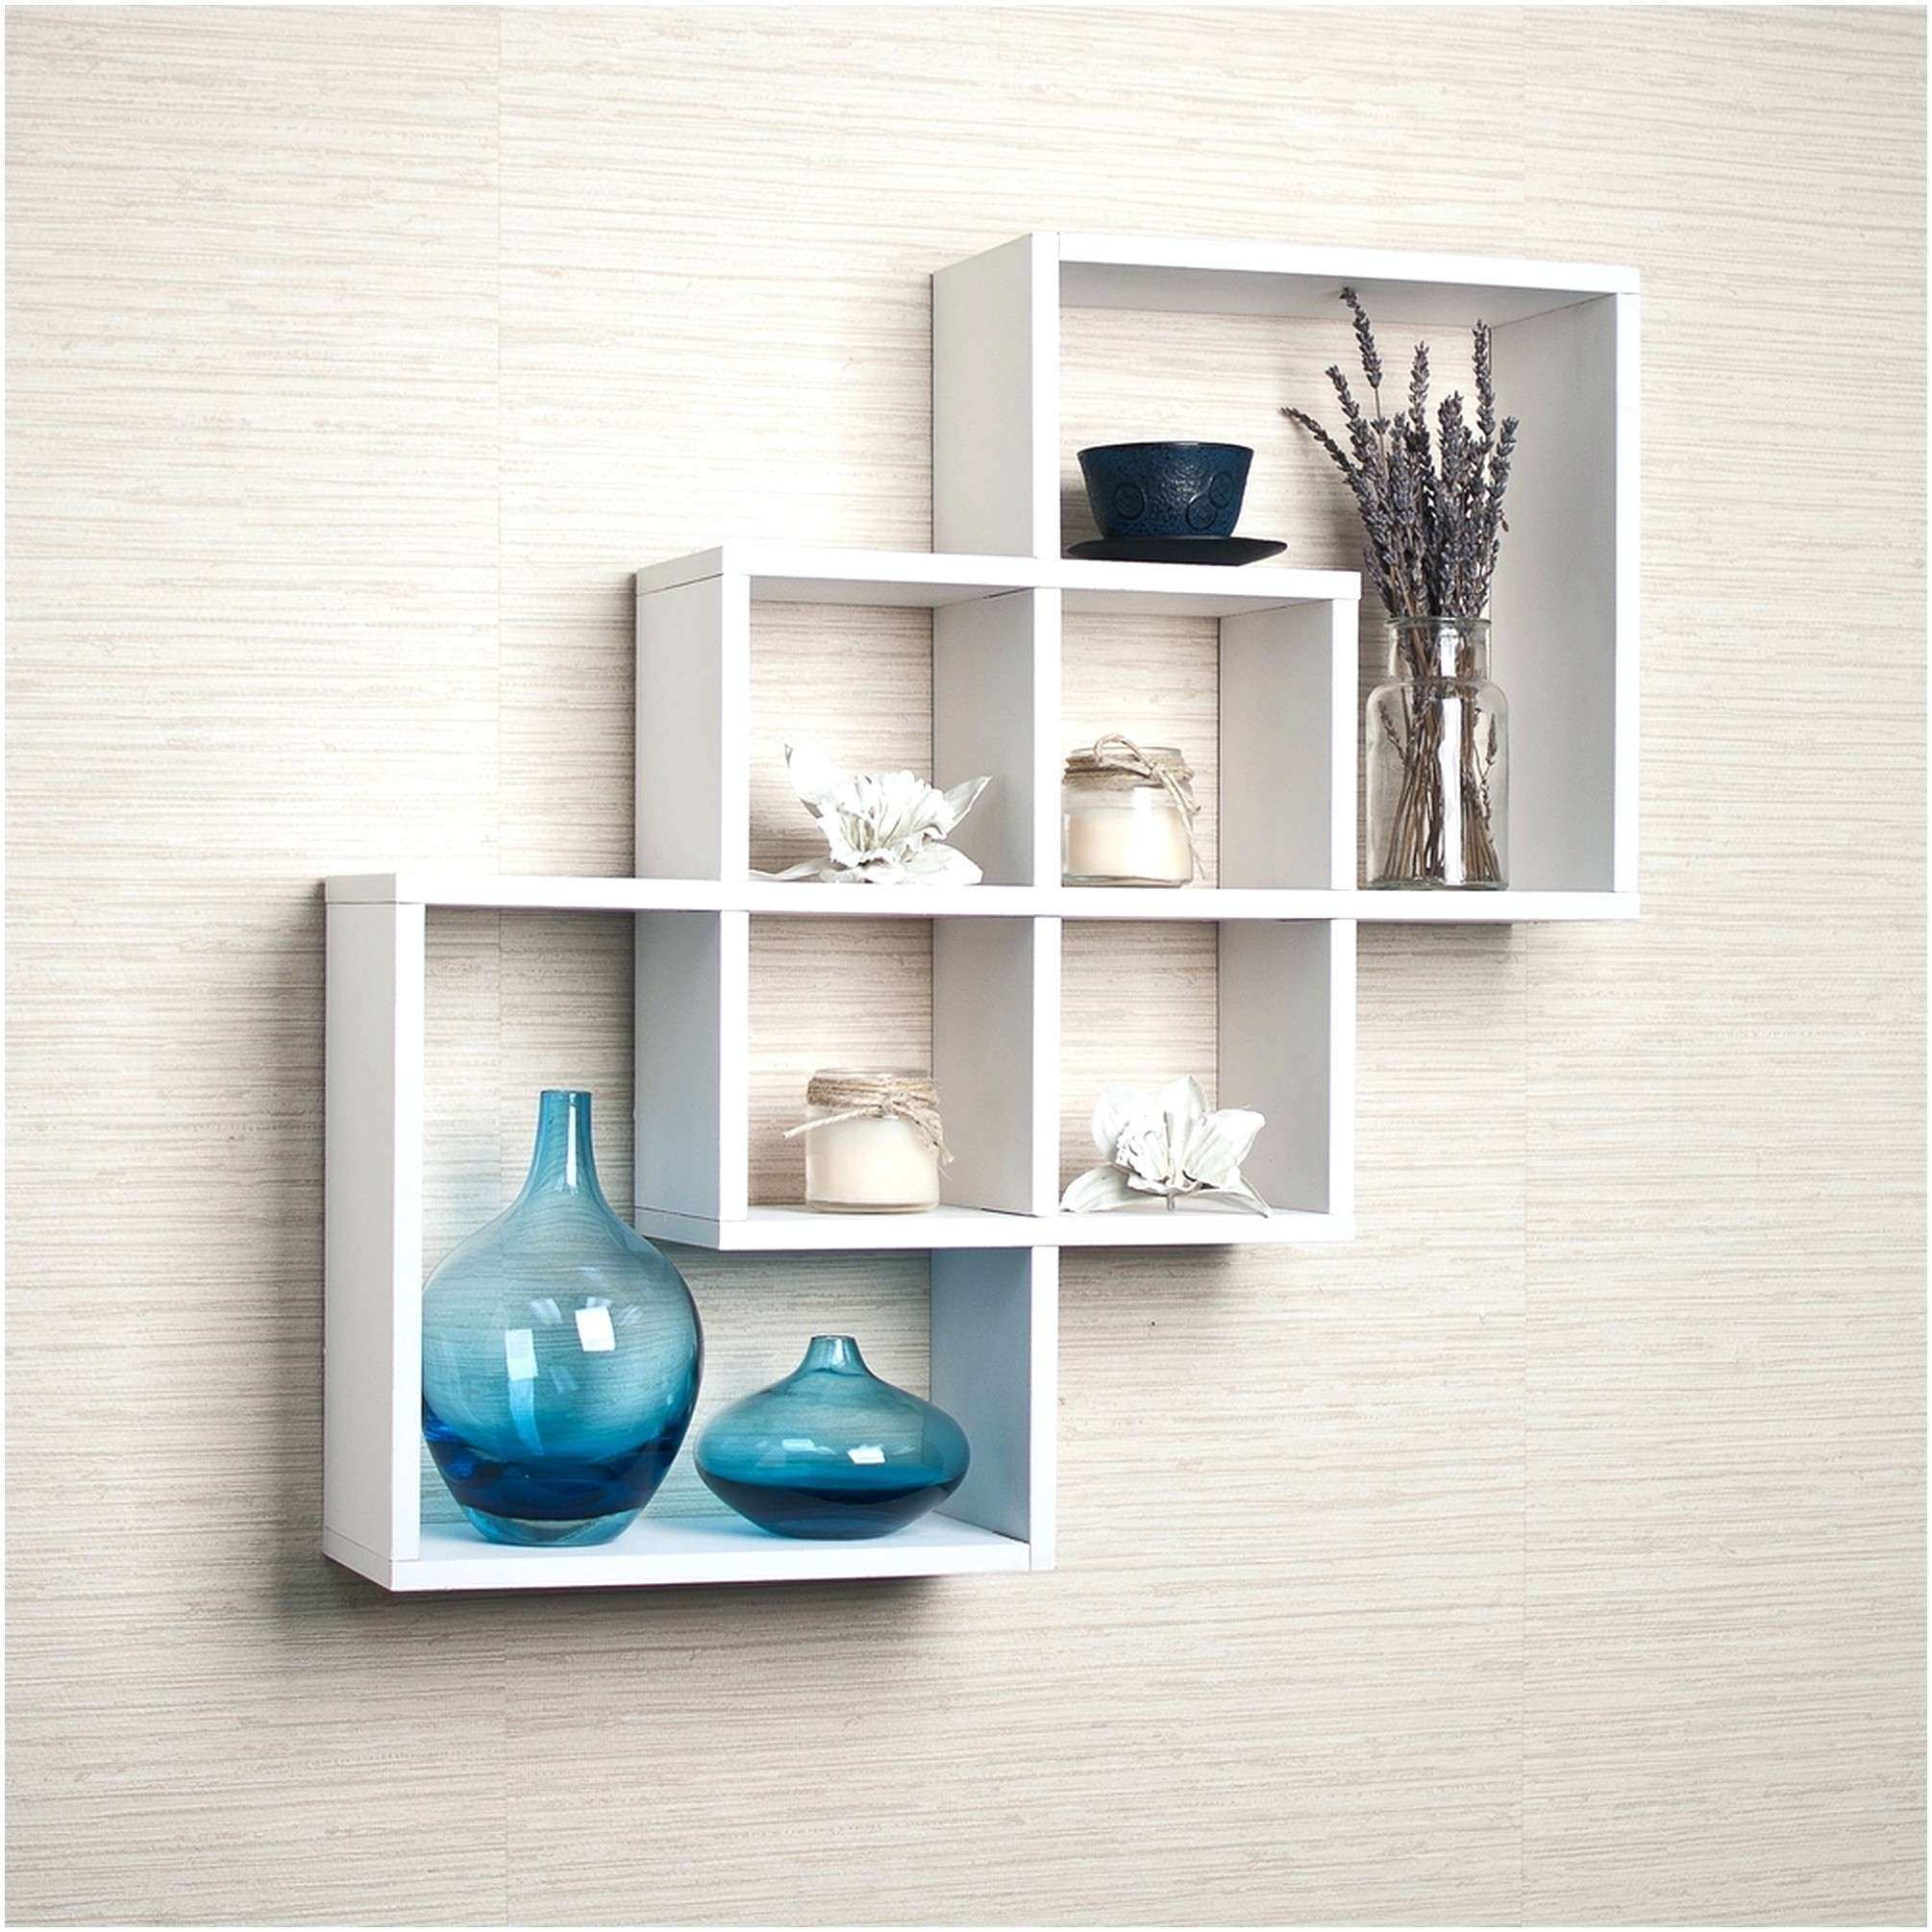 Strong Racks Wall Shelves Picture Frame Wall Shelves Floating